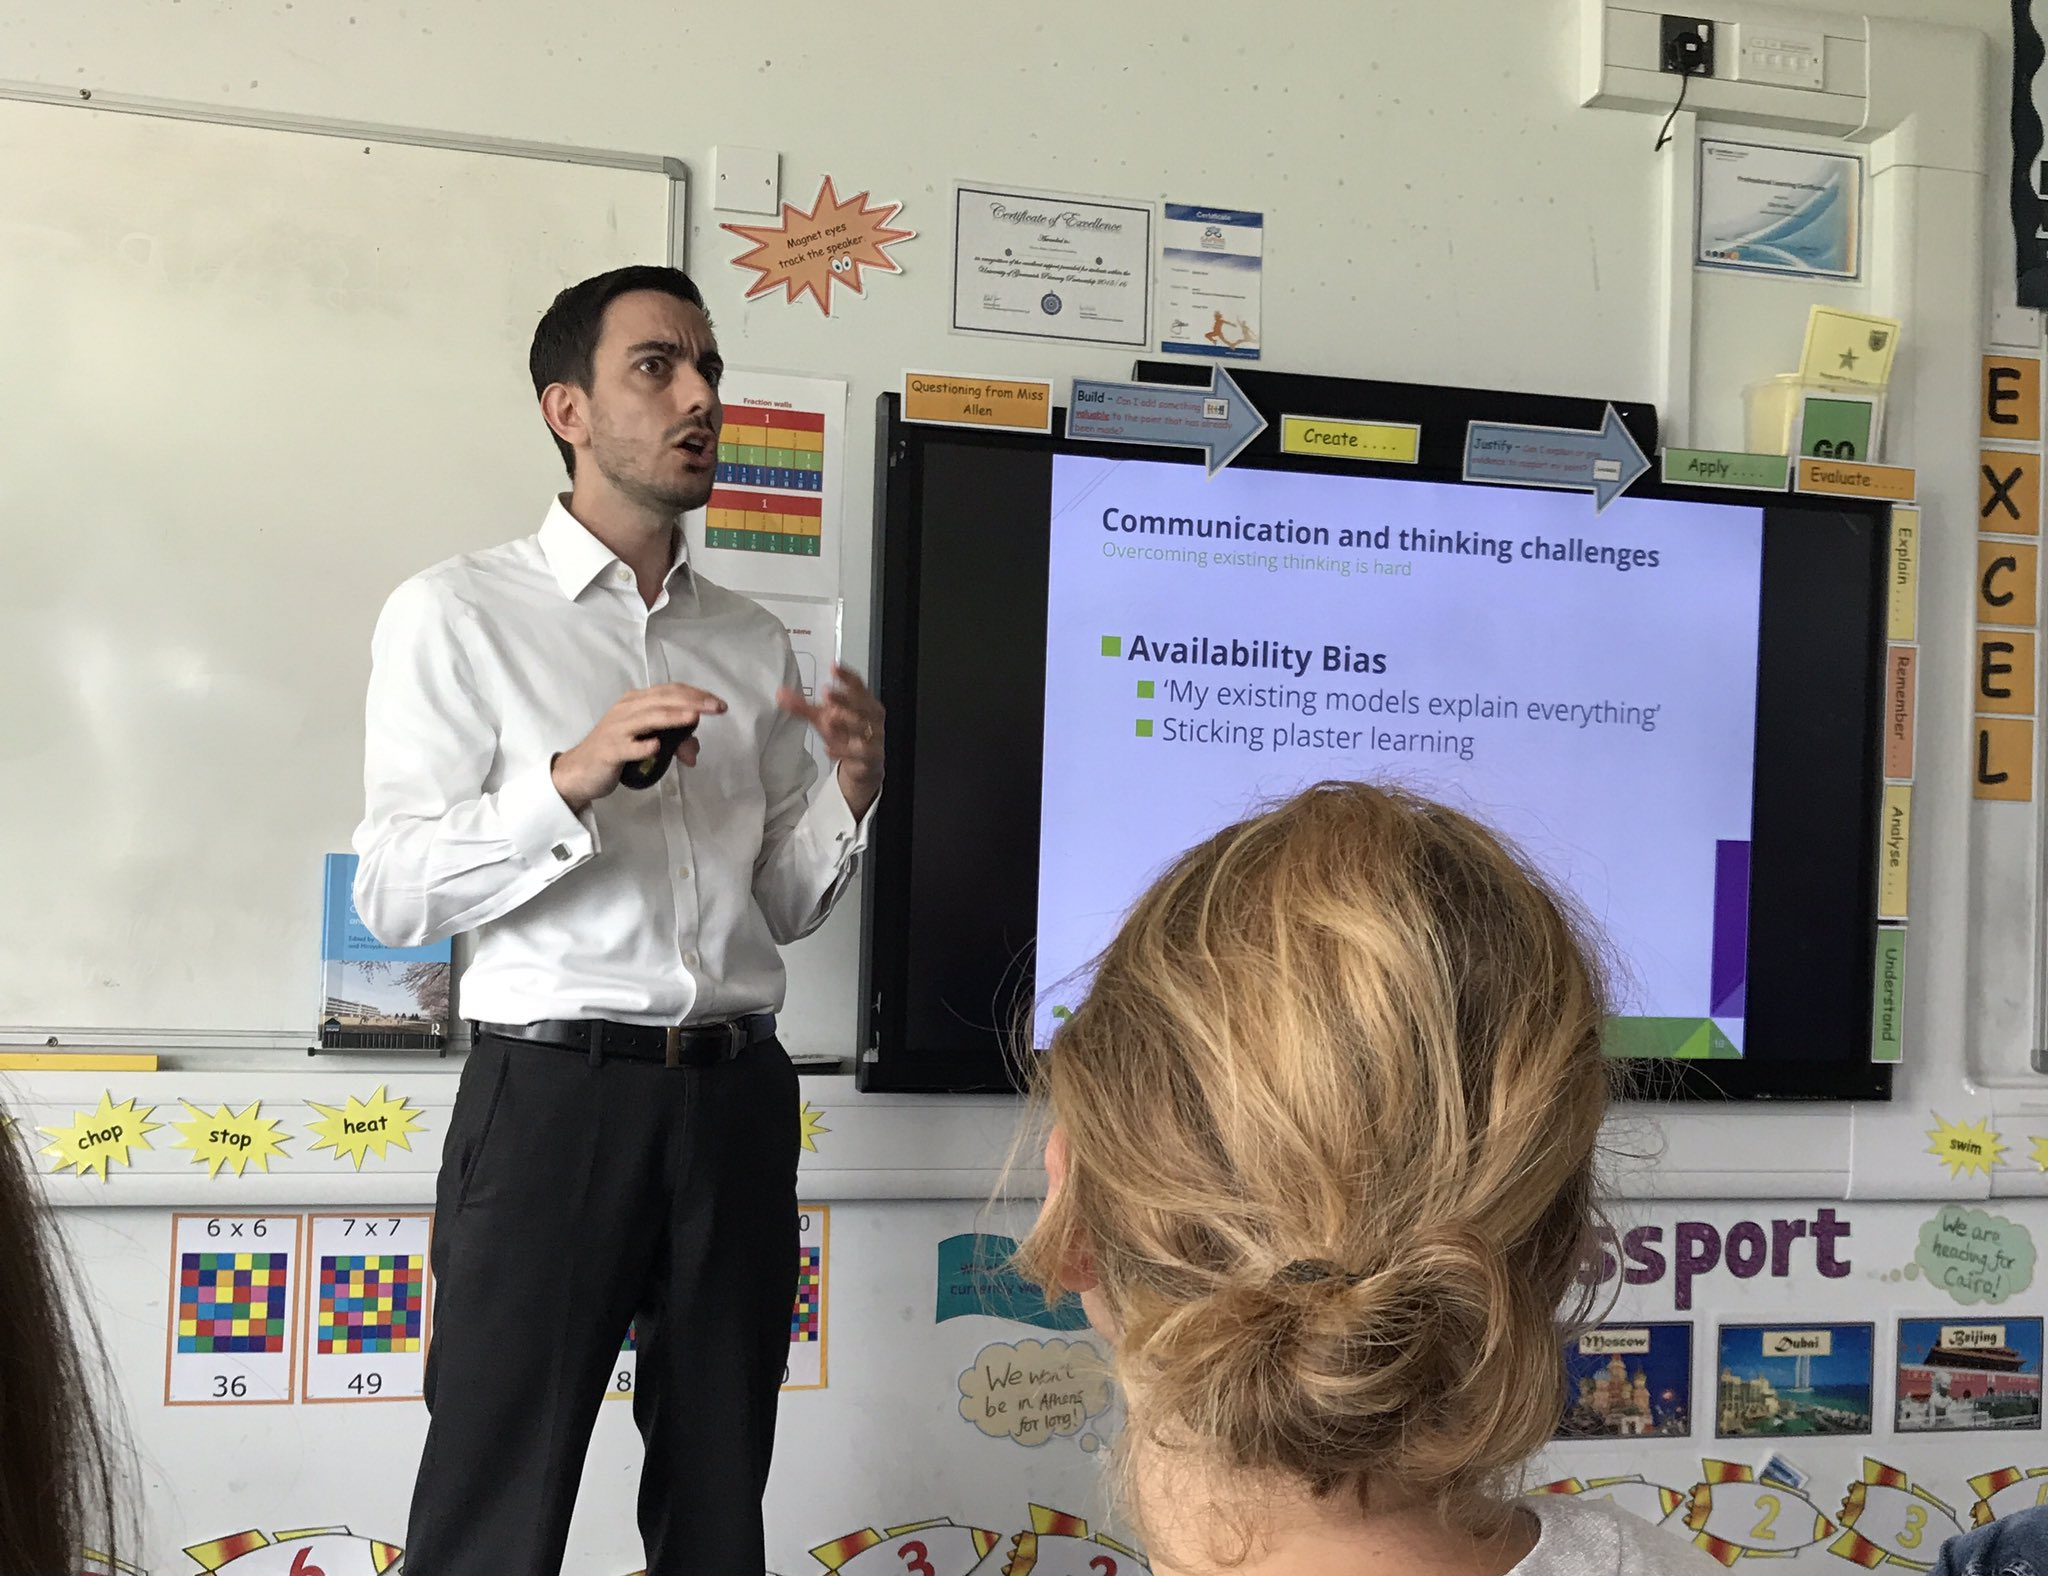 Availability, sunk cost bias and the Dunning Kruger effect @informed_edu great session #rED17 https://t.co/GZbawuNW4v